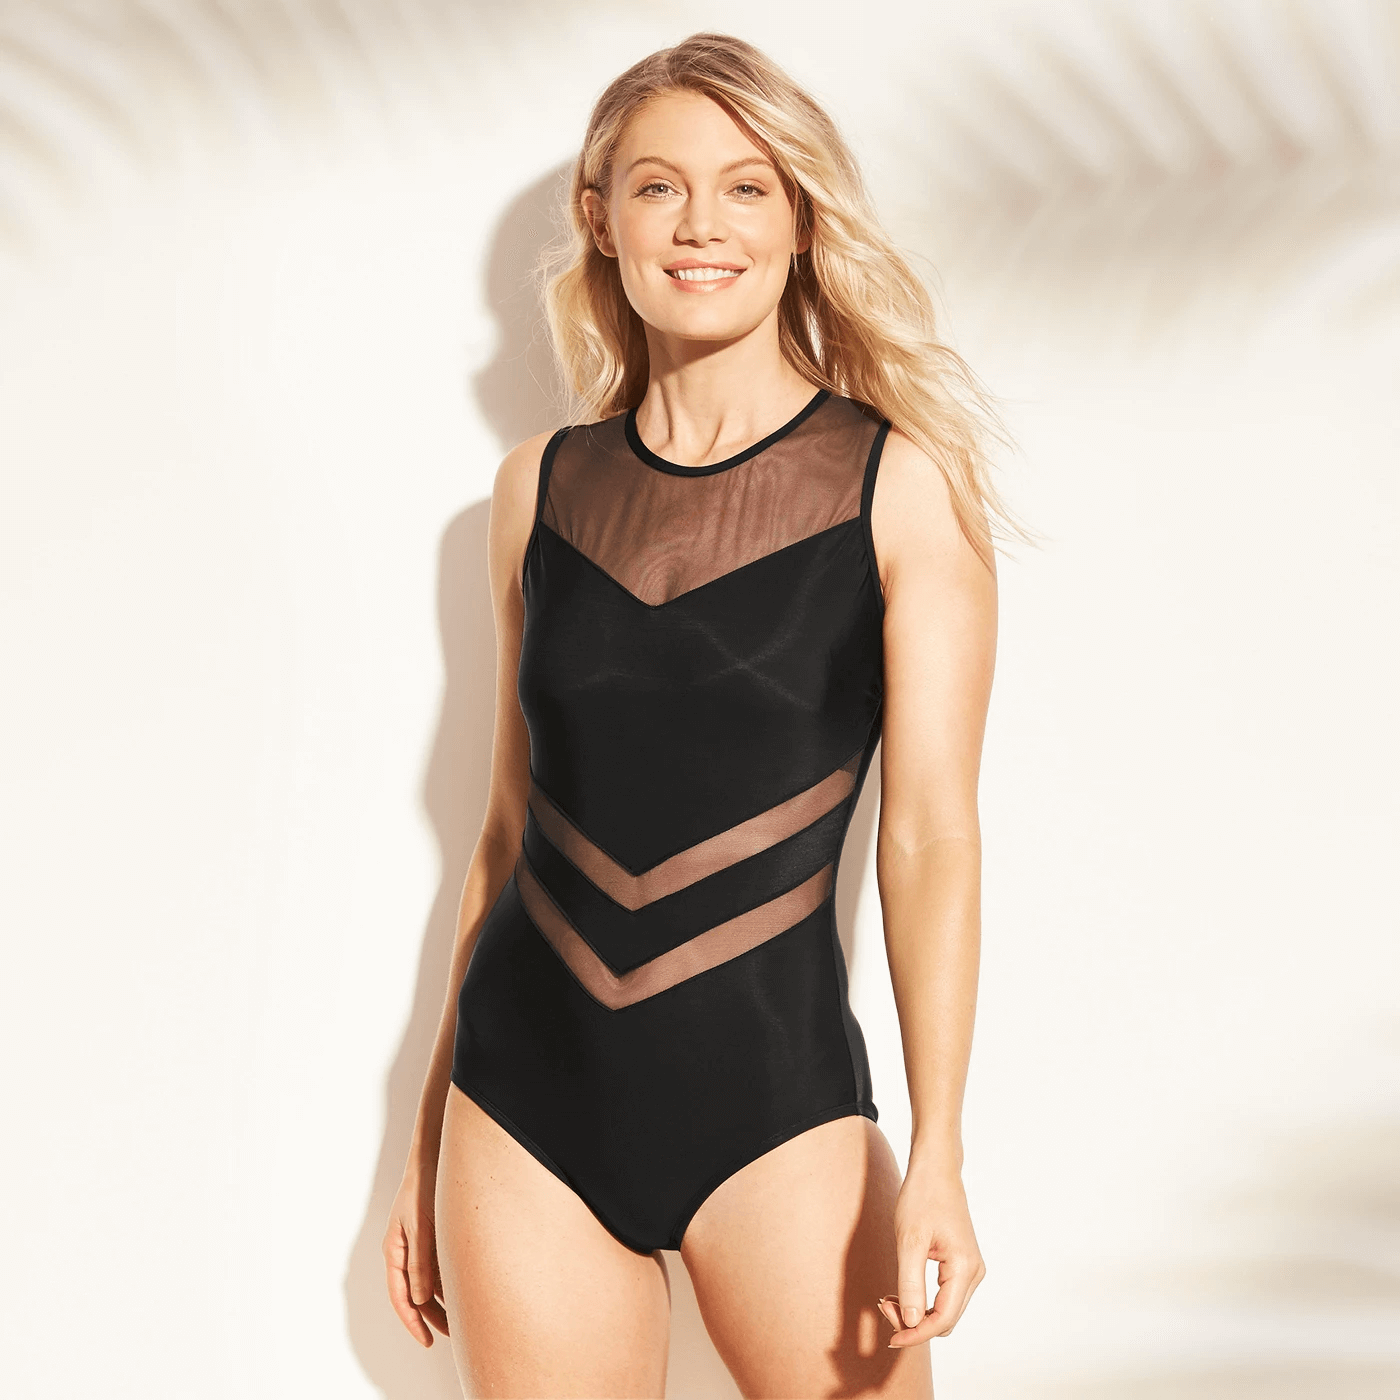 ad2e031fba 15 Target Swimsuits That Are Prime For Some Fun In The Sun | I AM & CO®